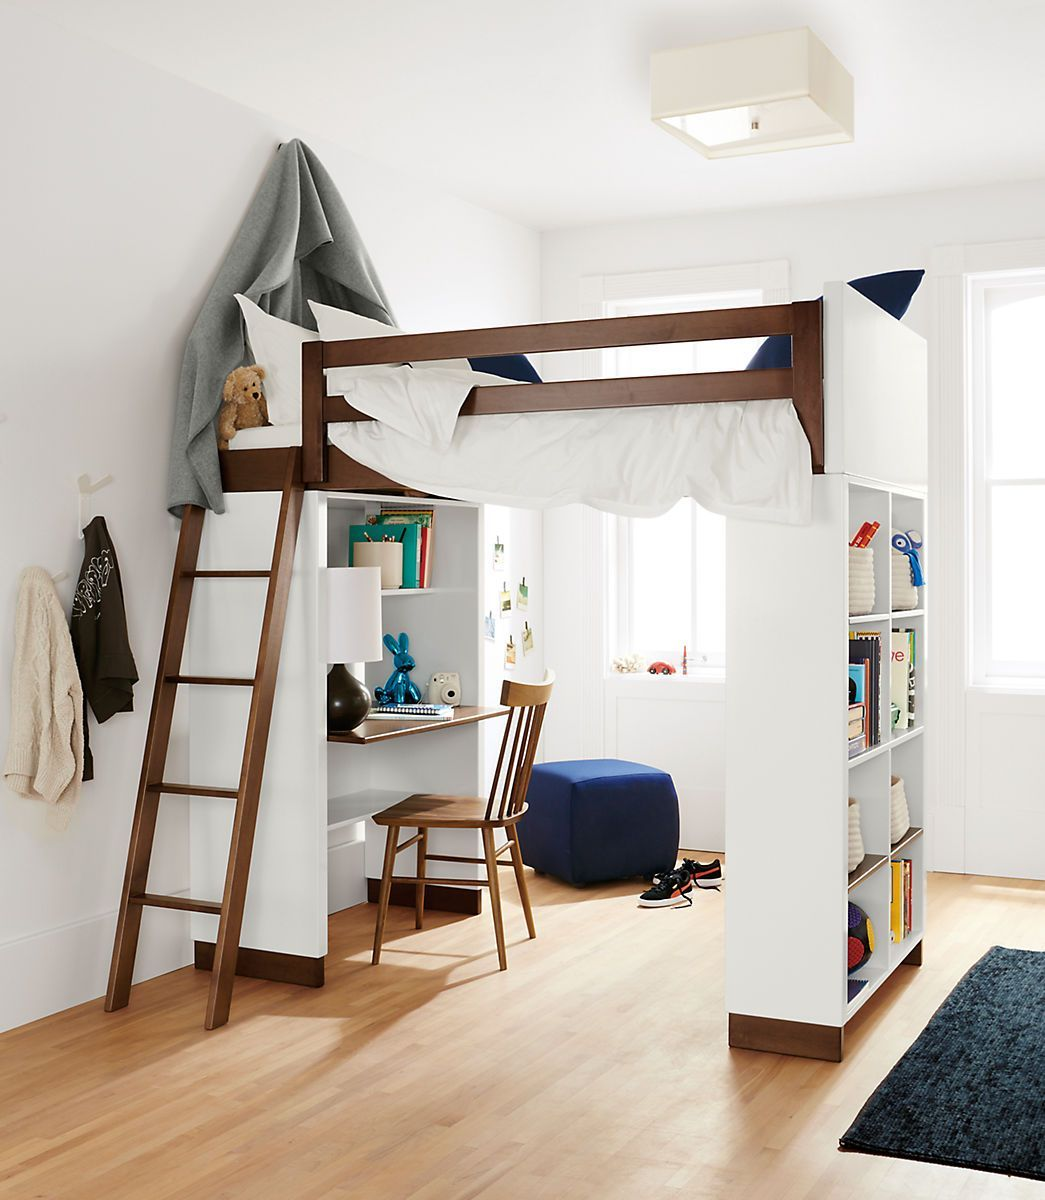 A Very Cool Use Of The Space In This Small Bedroom